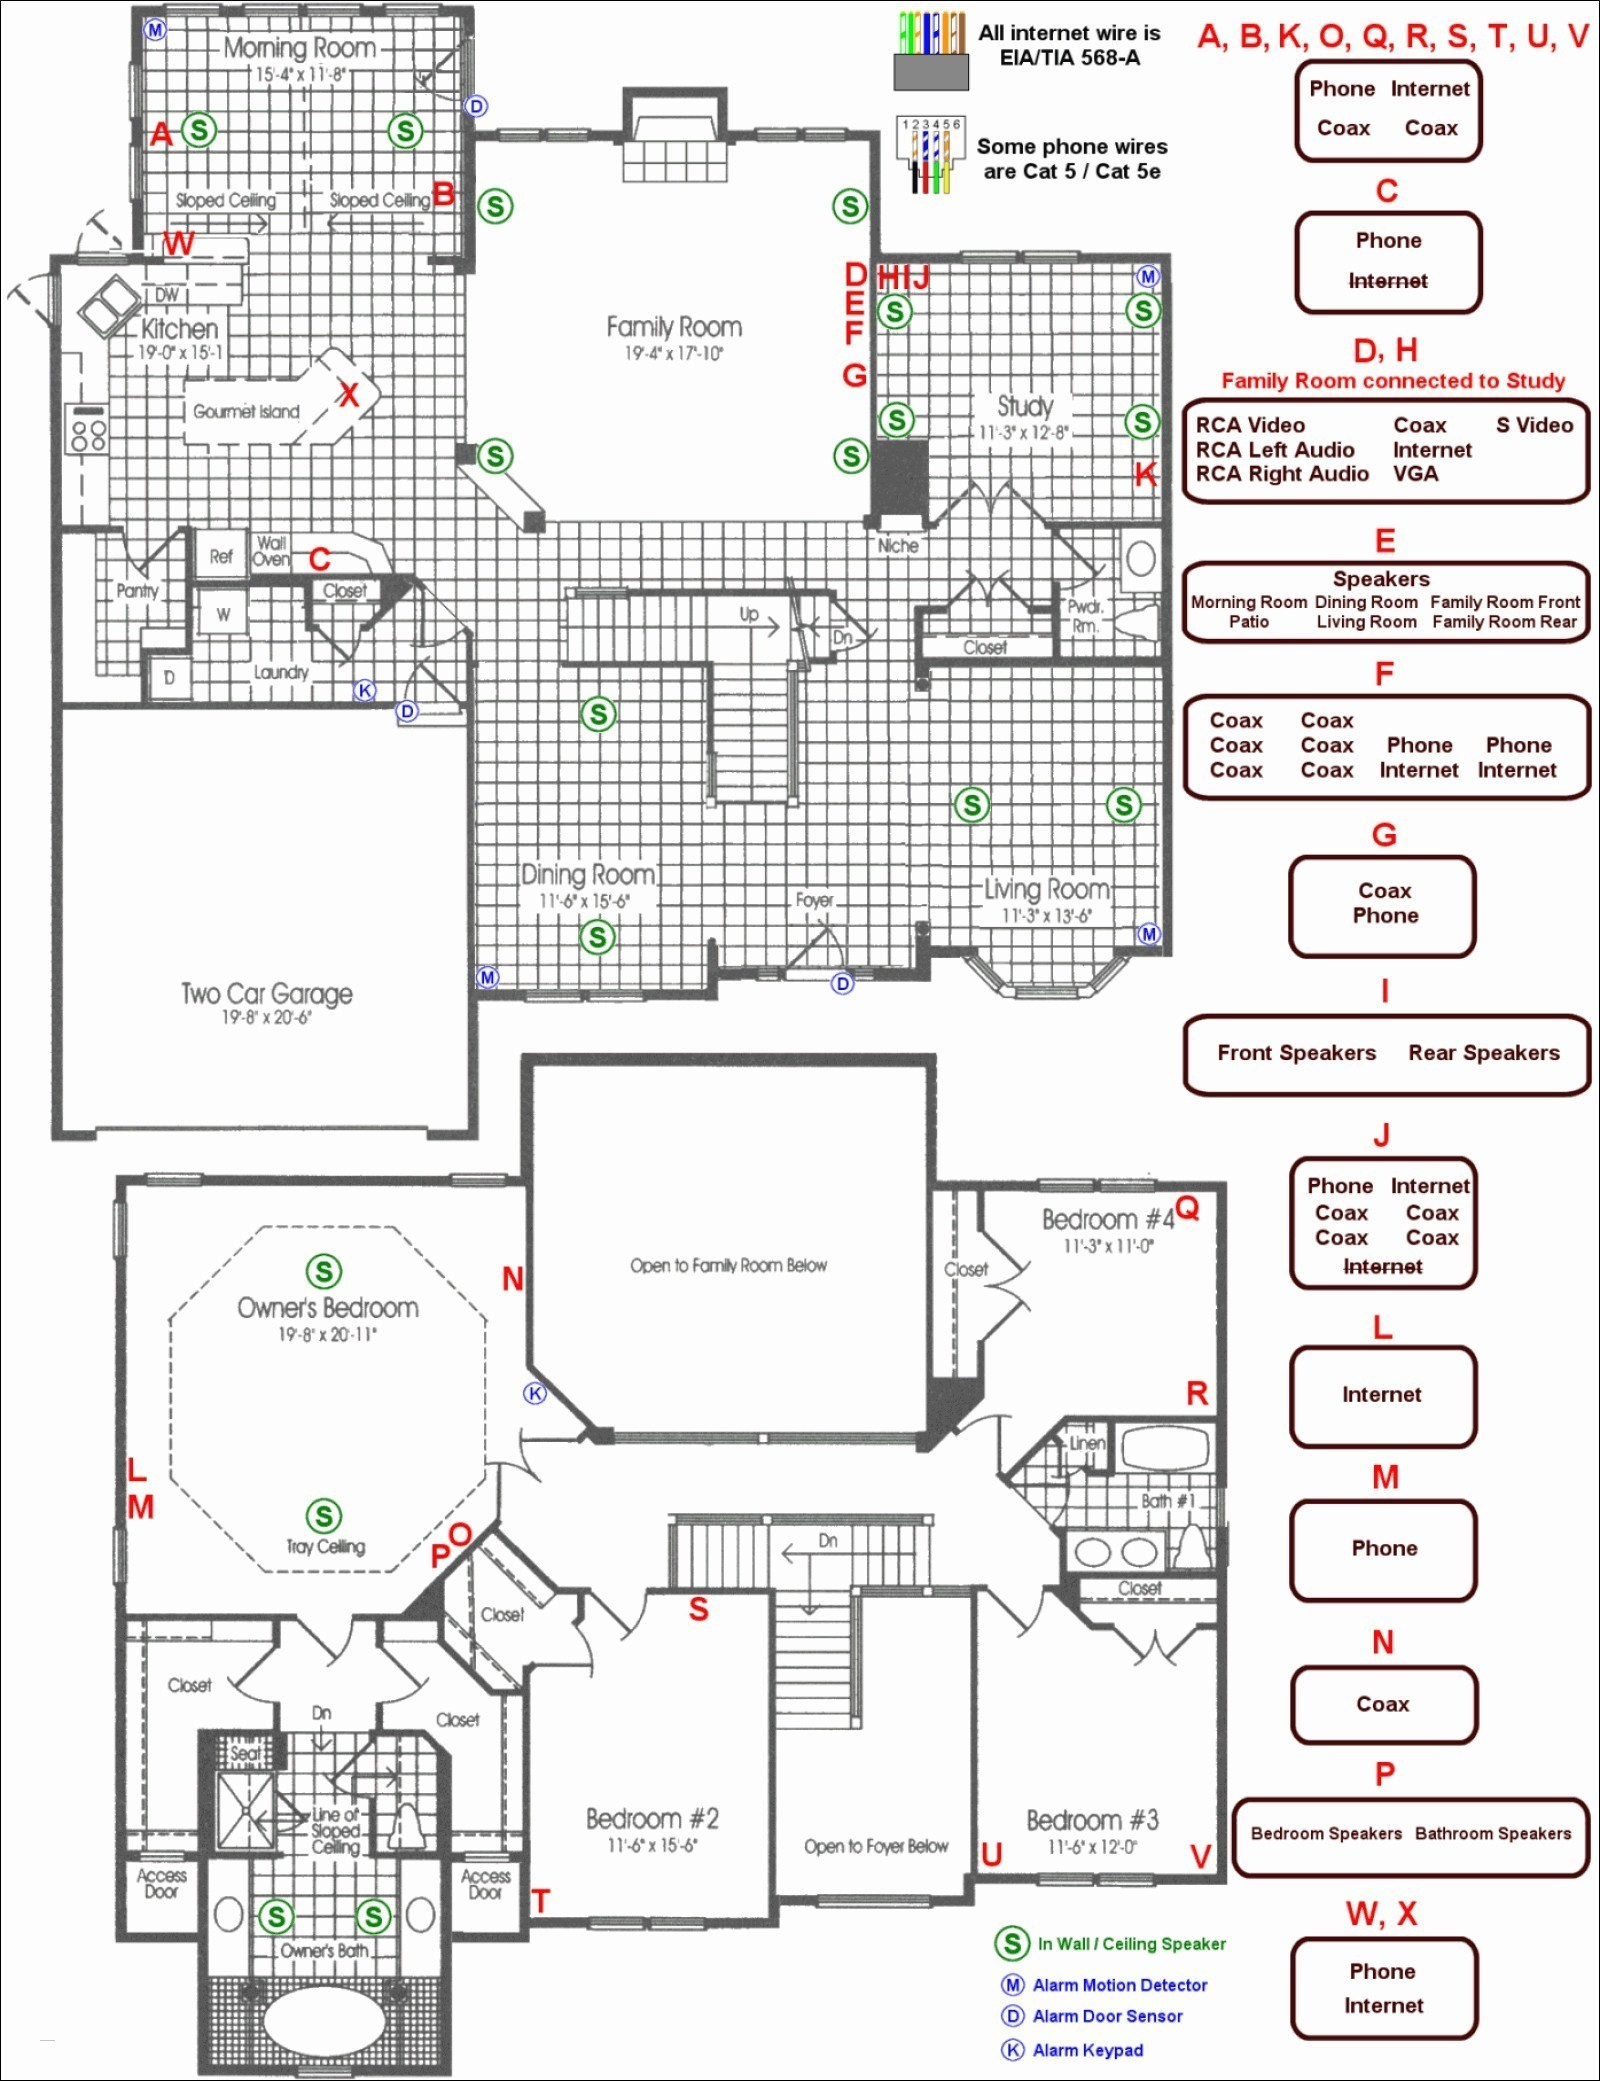 kitchen electrical wiring diagram Download-House Wiring Plan Drawing Awesome Electrical Wiring Diagram Symbols Sample 13-e